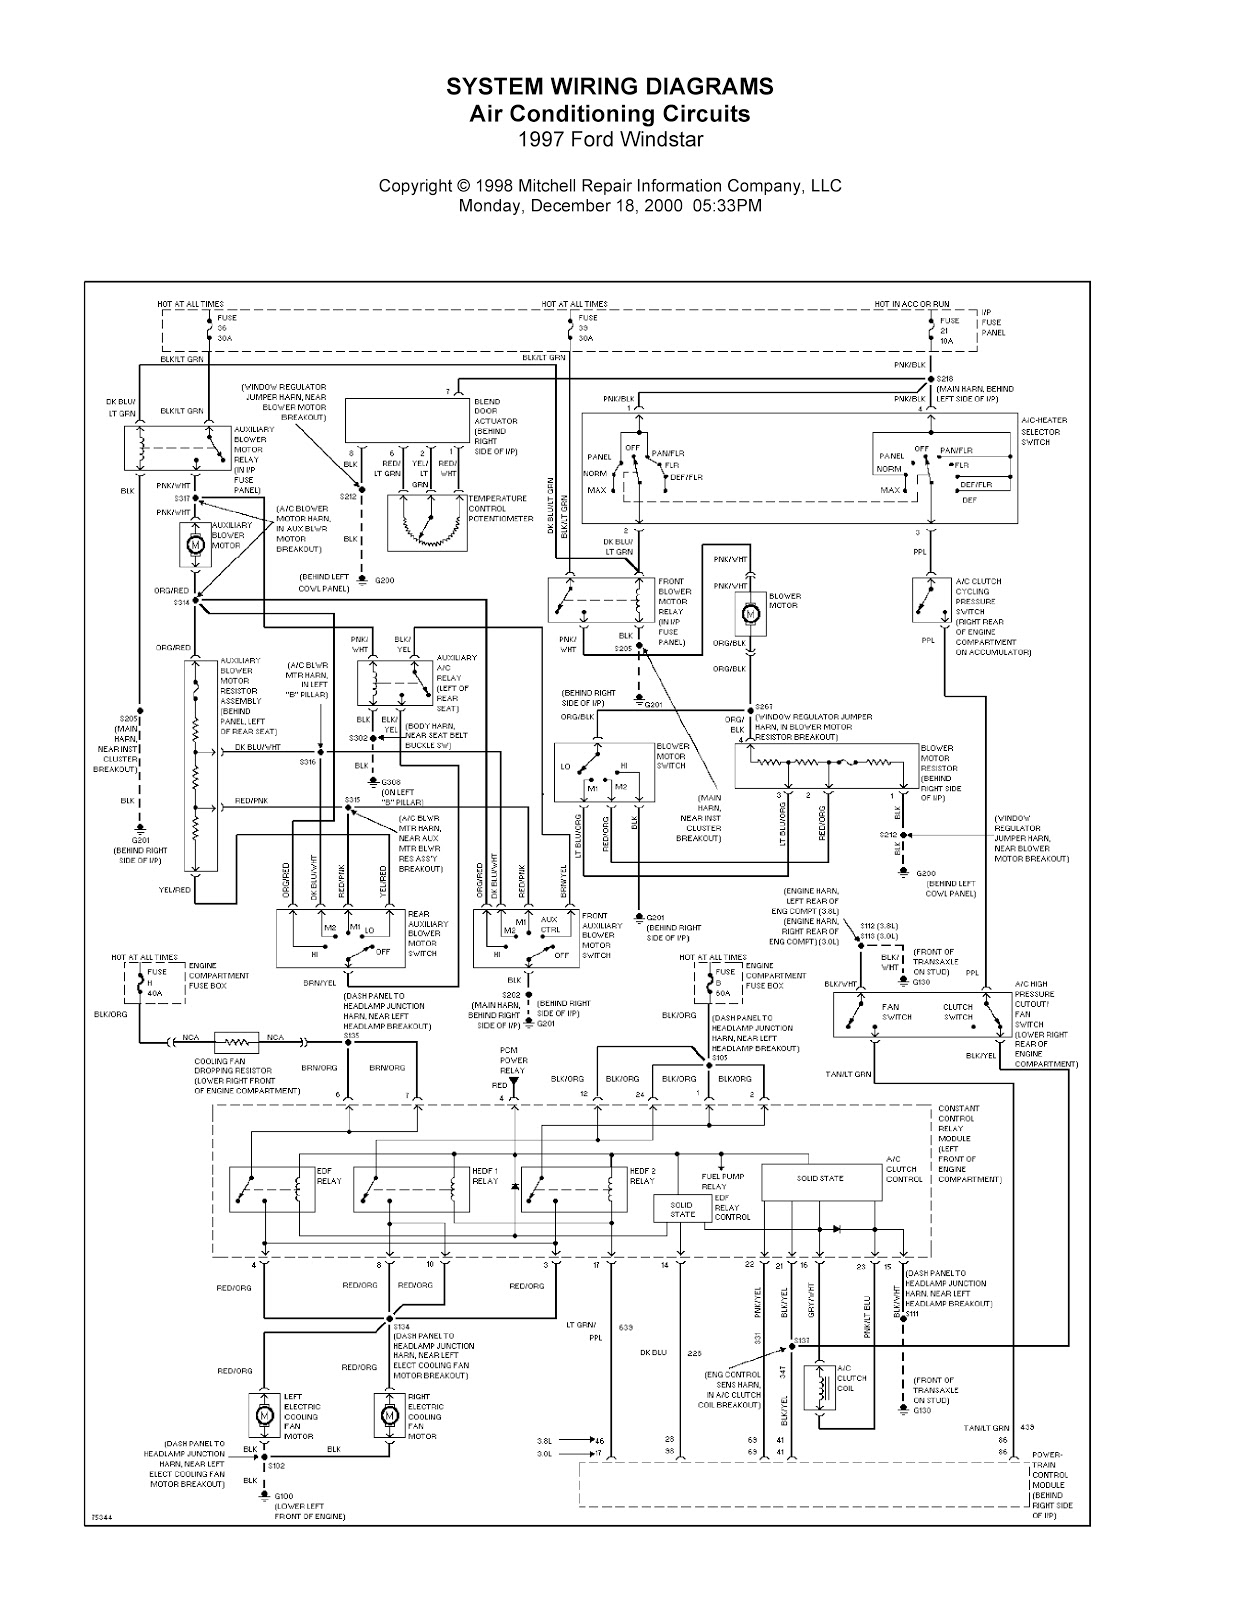 0001 2000 ford windstar wiring diagram ford windstar 3 8 engine diagram 2002 ford windstar fuse box diagram at fashall.co